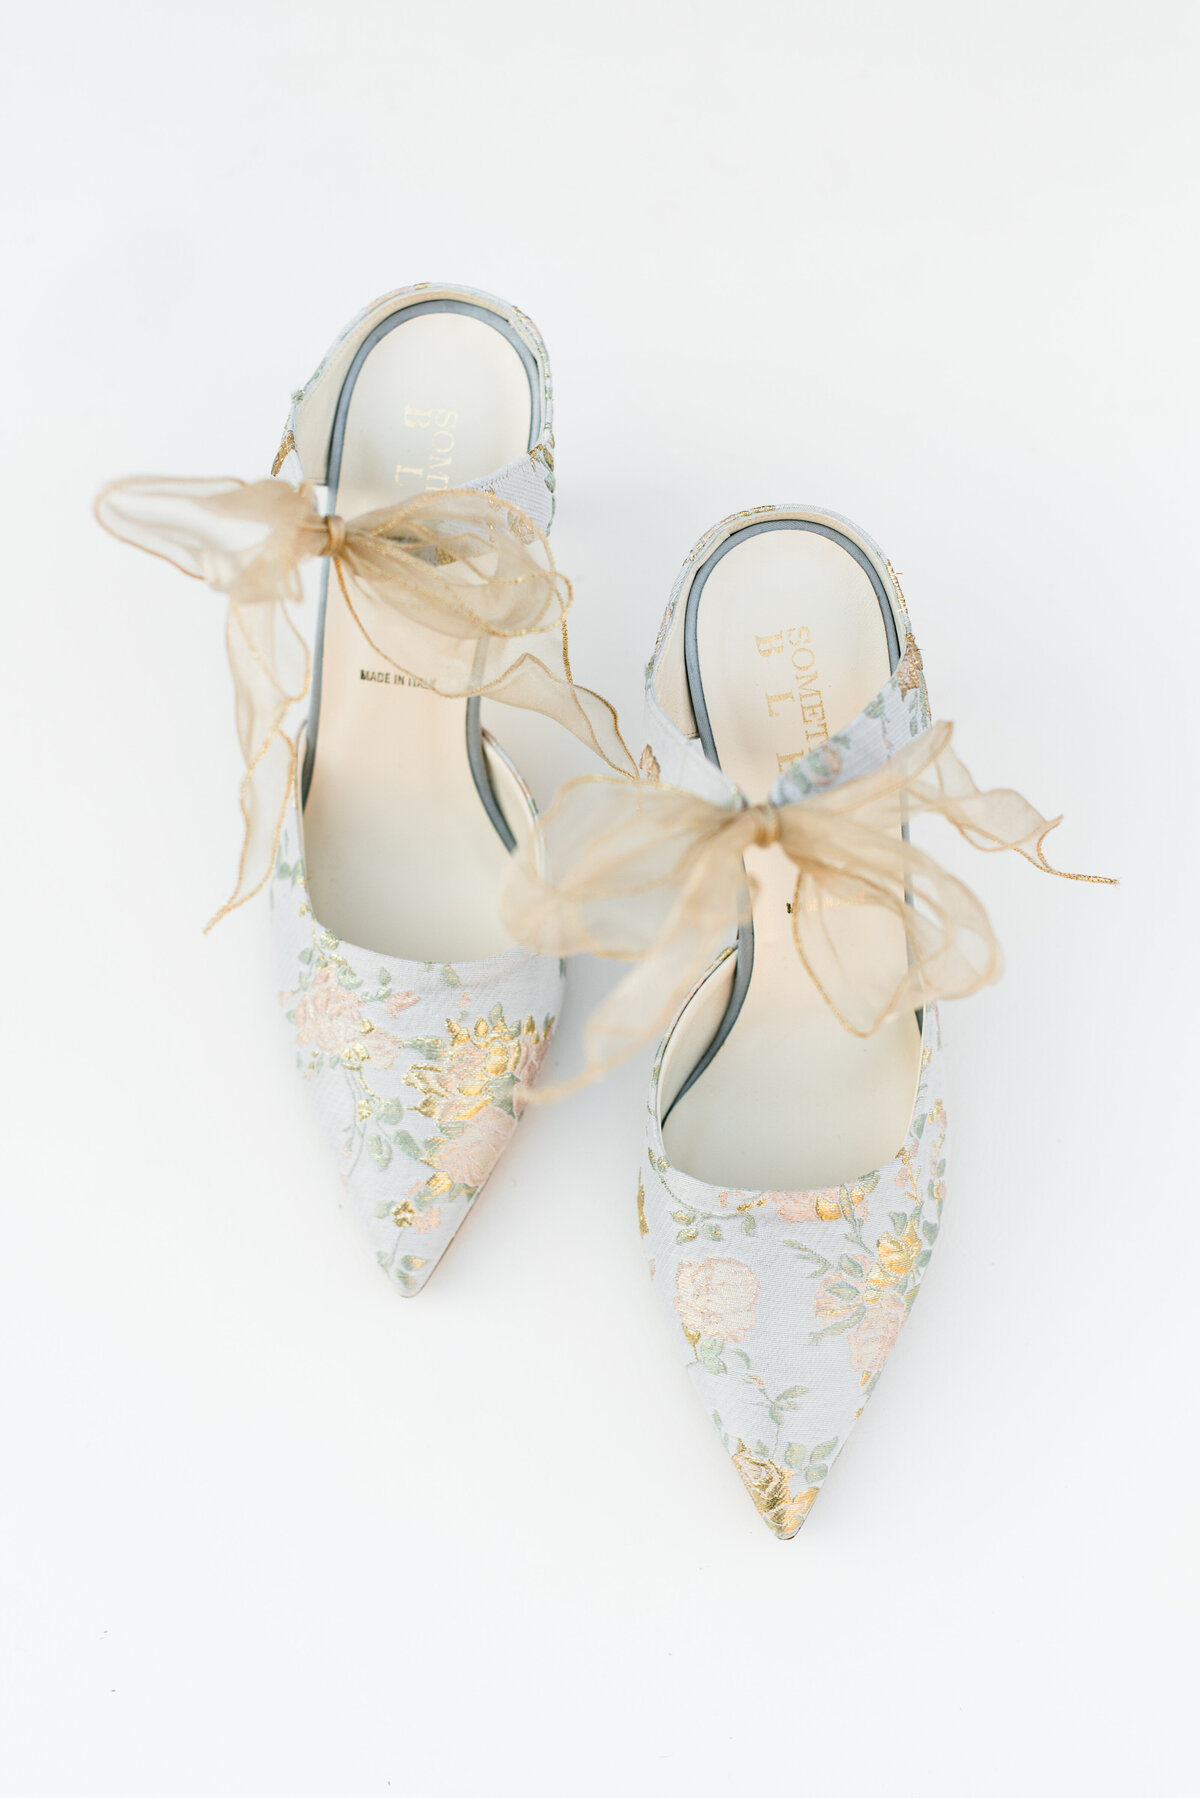 A pair of Something Bleu wedding shoes sits on a white backdrop